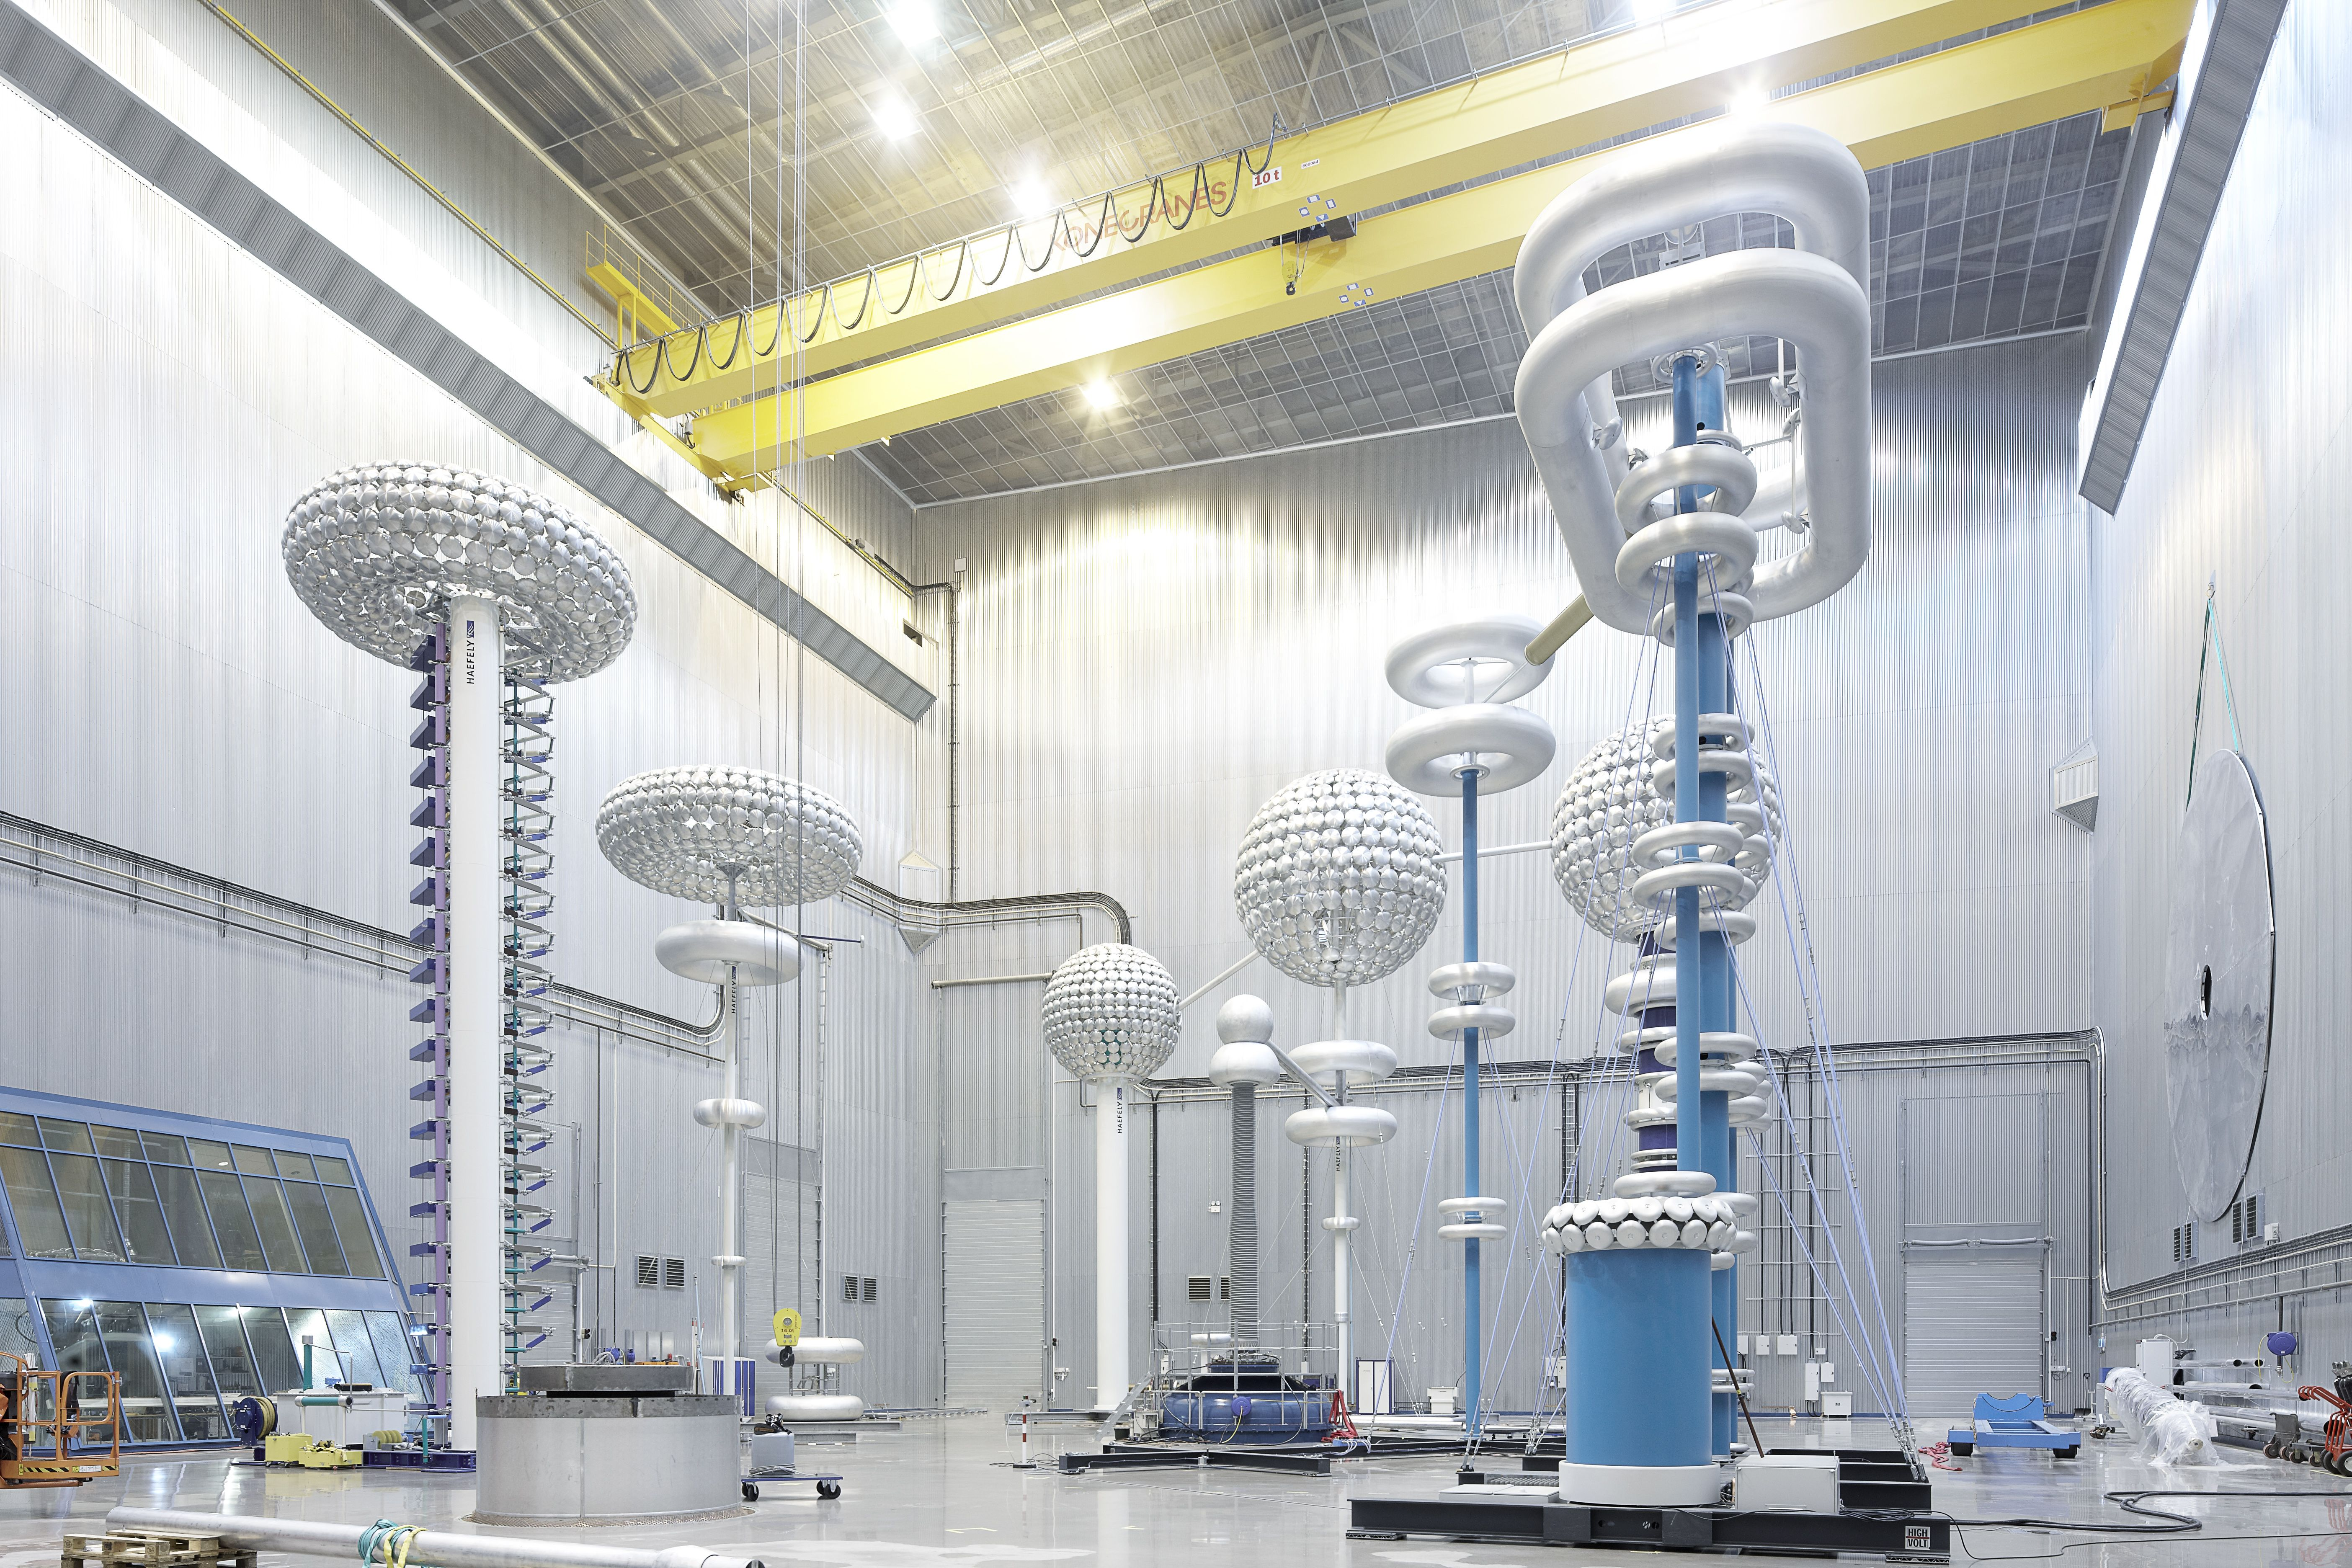 hvdc technology to abb and siemens Designed and built collaboratively by abb and siemens, the transformer will be commissioned in 2018 for installation as part of the changji-guquan link spanning 2,040 miles (3,284 km), the link will set world records for voltage, transmission capacity, and distance.